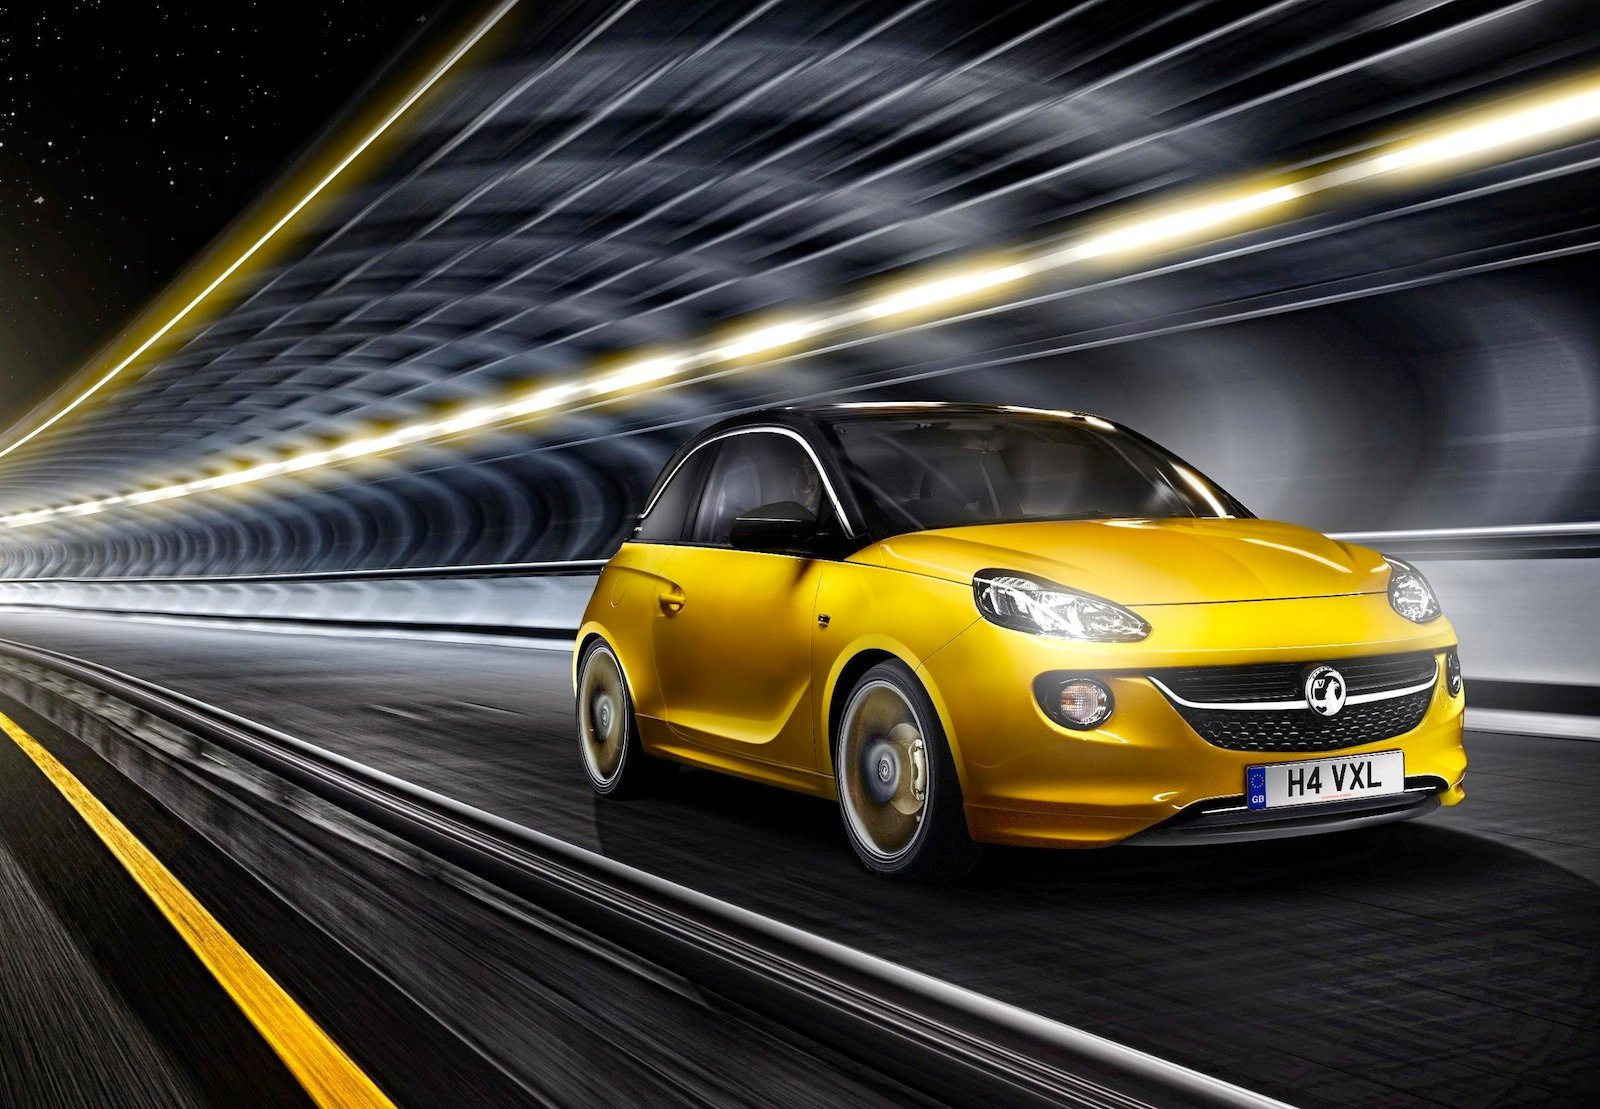 opel adam stylish city car not for oz photos 1 of 11. Black Bedroom Furniture Sets. Home Design Ideas